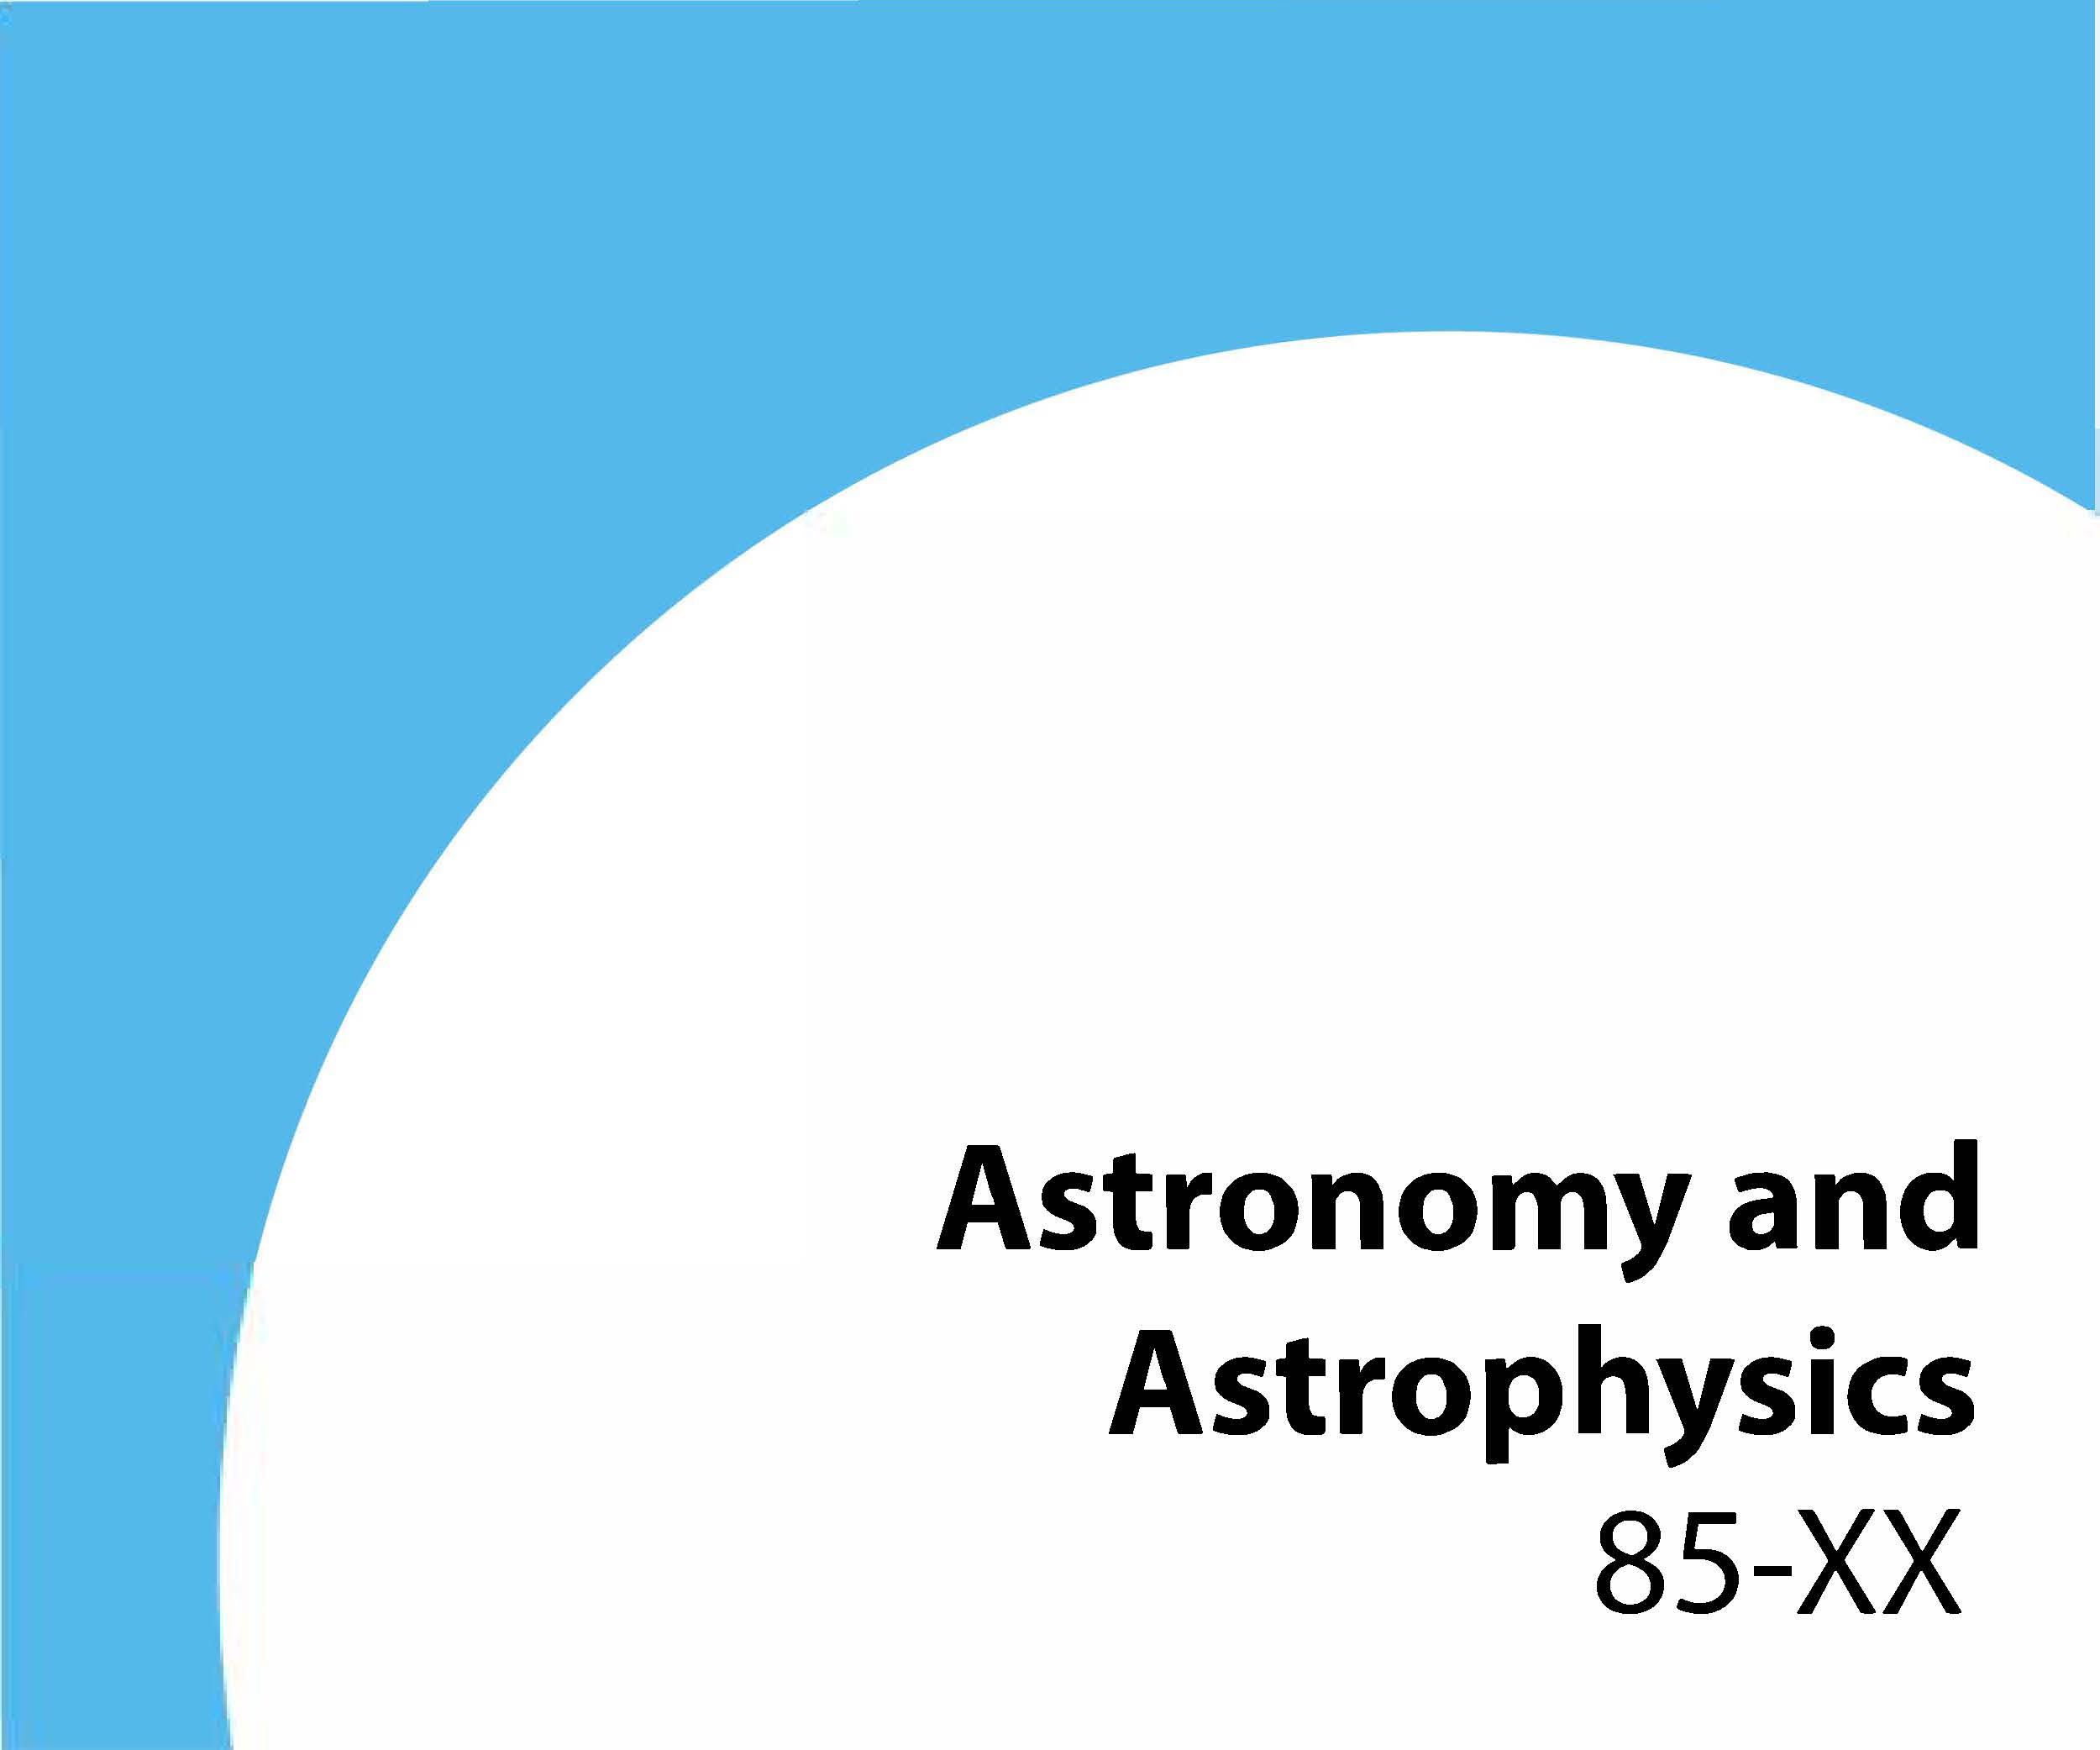 85-xx Astronomy and astrophysics